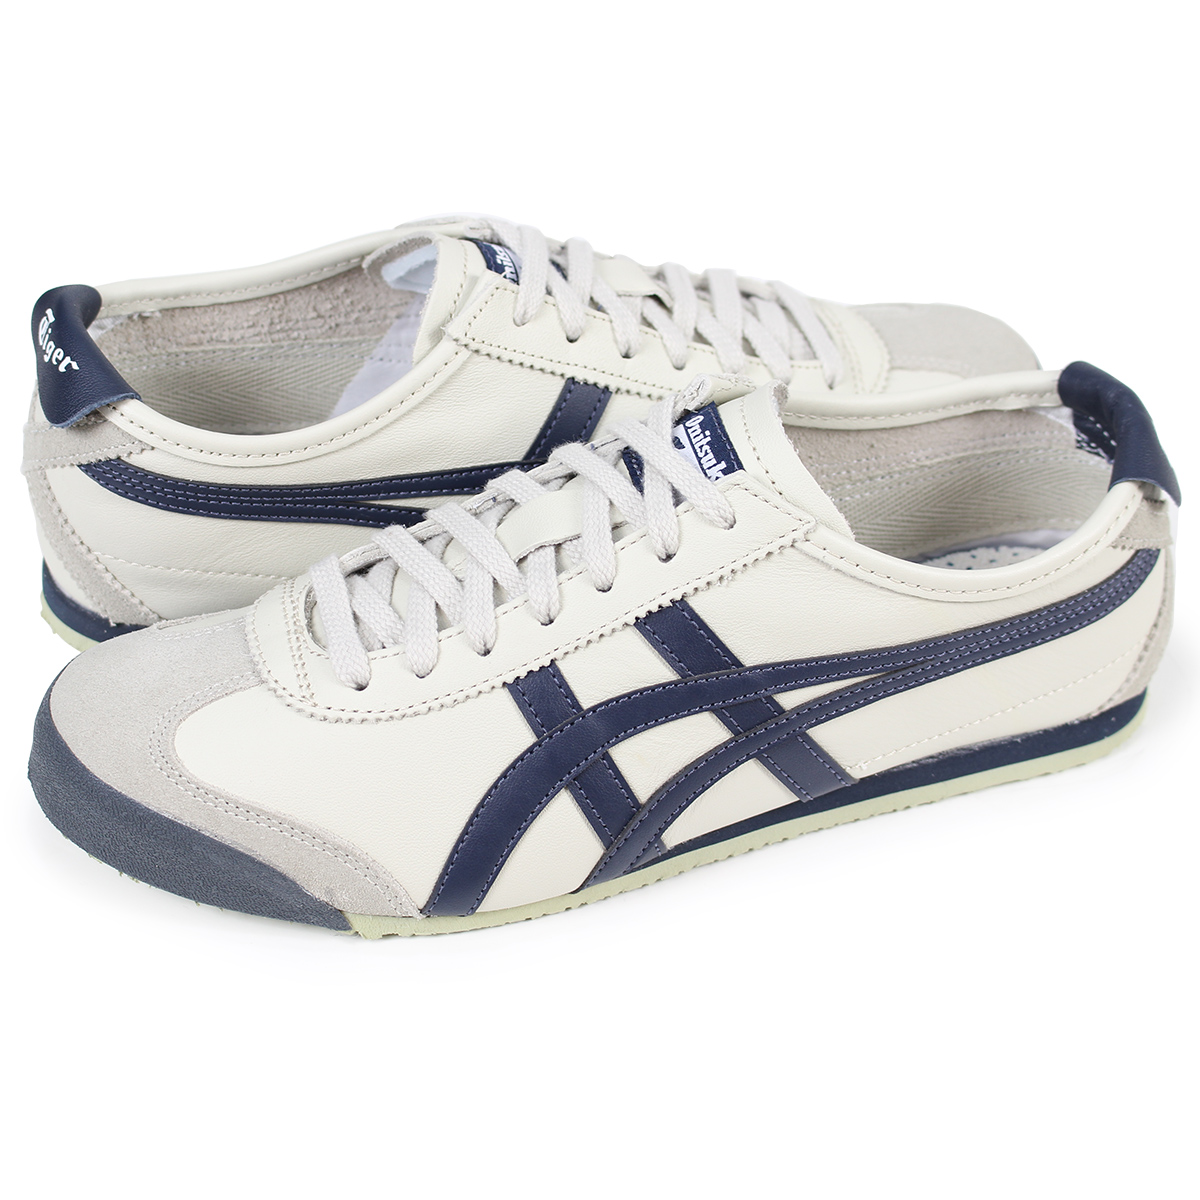 allsports asics onitsuka tiger asics mexico 66 sneakers. Black Bedroom Furniture Sets. Home Design Ideas